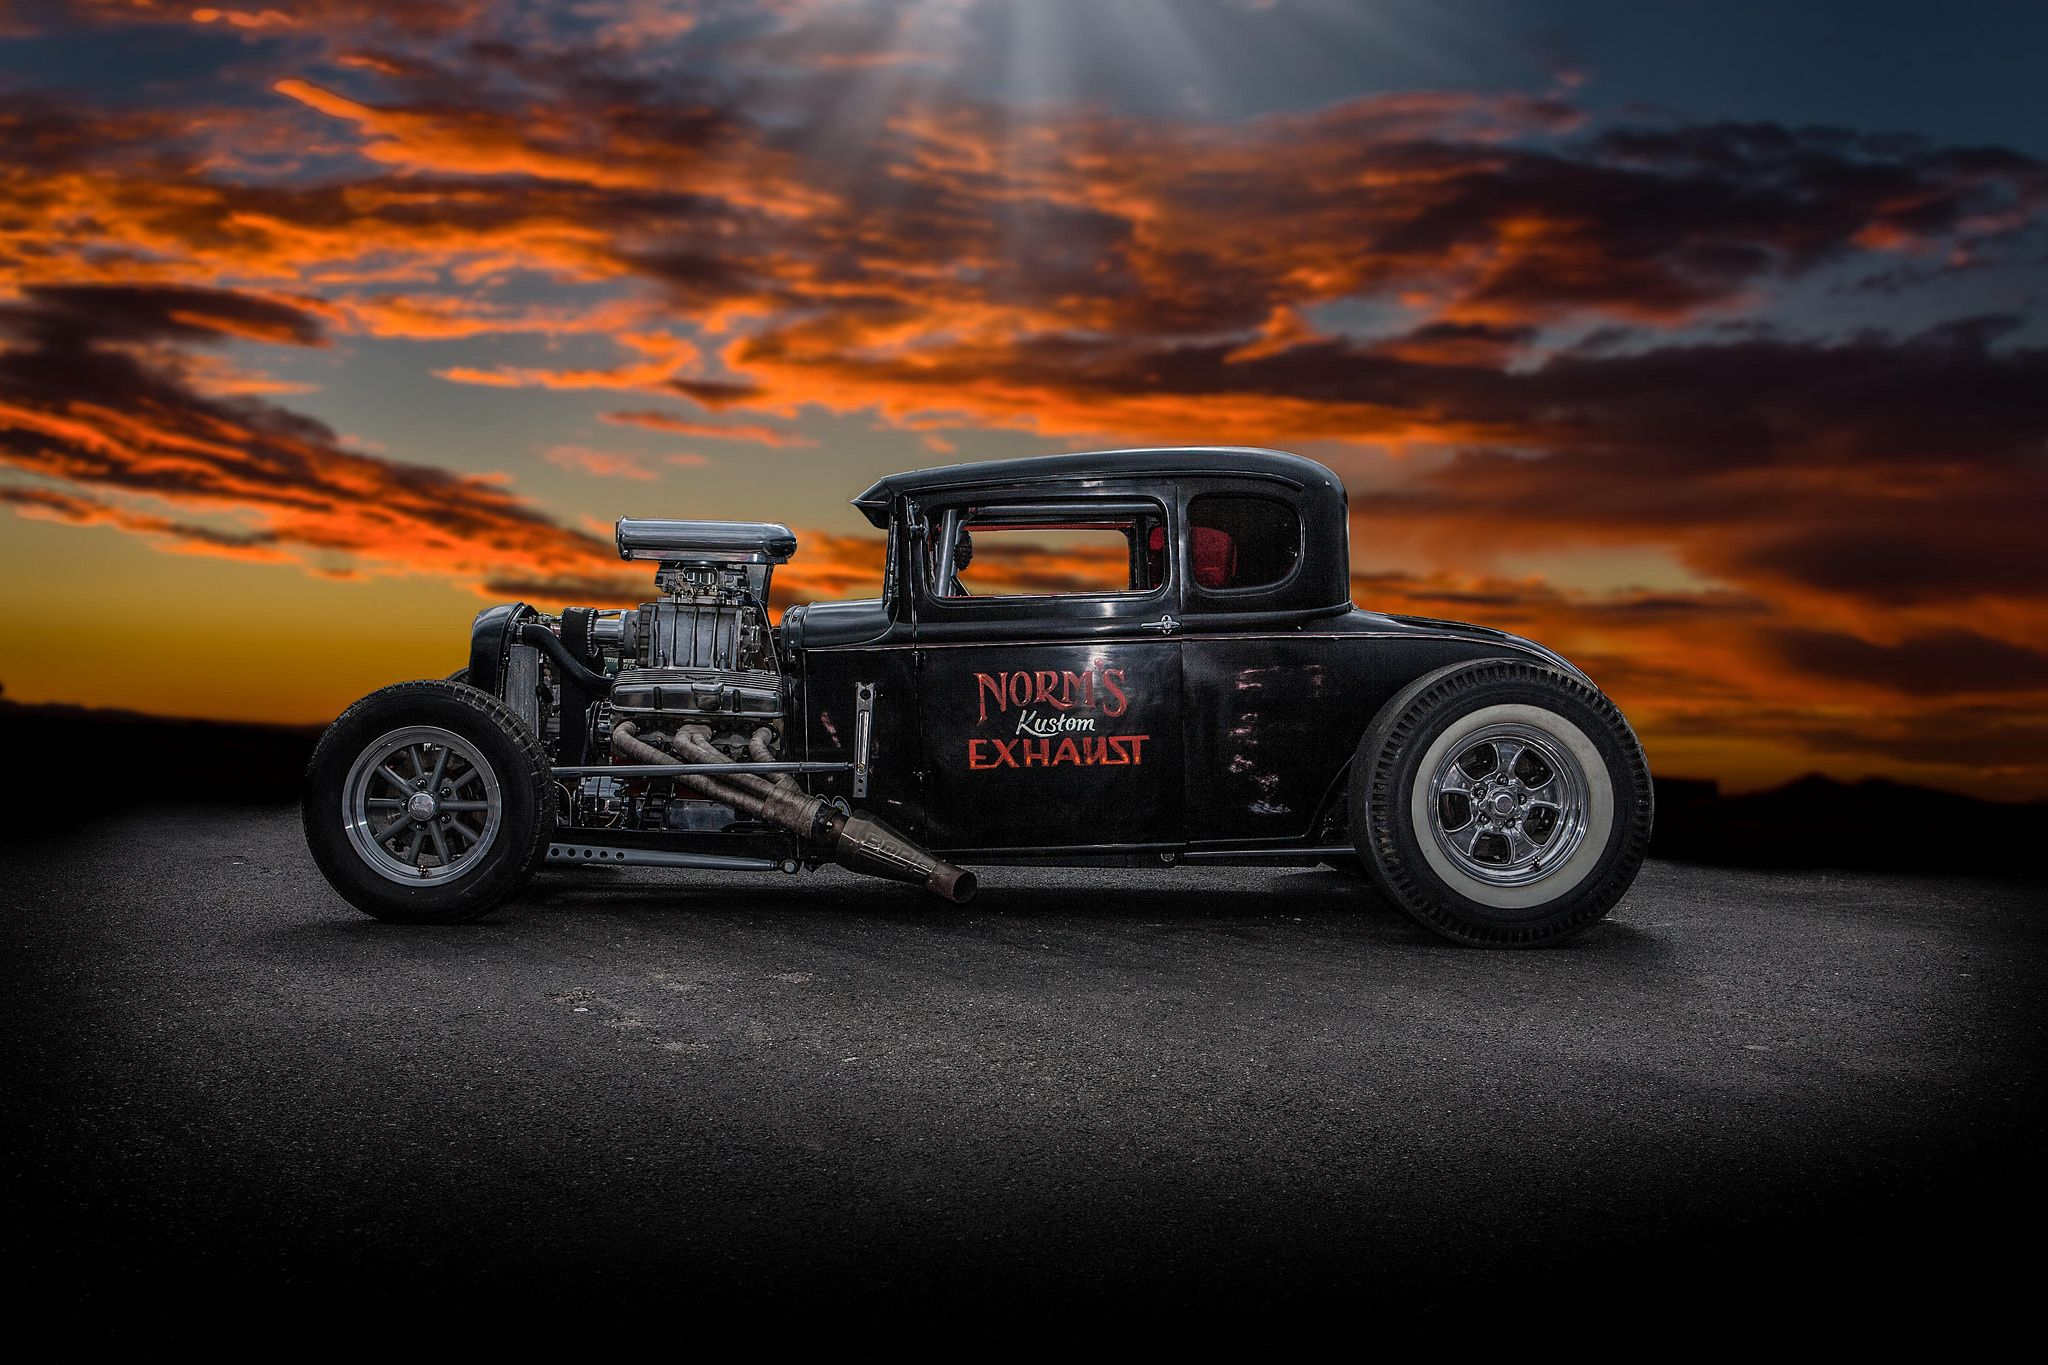 hot rod cars wallpapers photo otomotif wallpaper hot rod street rod. Black Bedroom Furniture Sets. Home Design Ideas